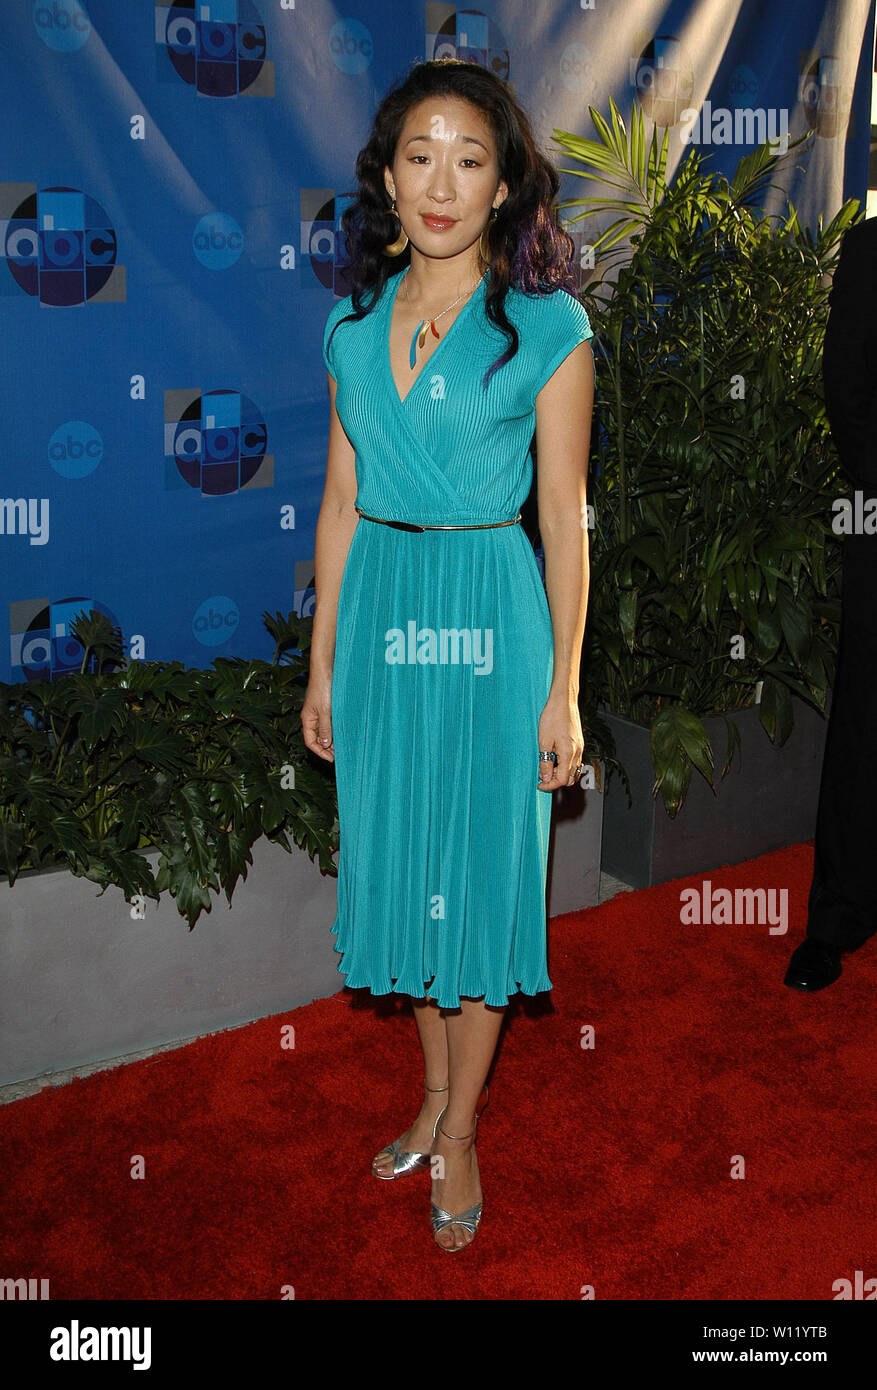 Sandra Oh at the 2004 ABC All-Star Party at C2 Cafe in Century City, CA. The event took place on Tuesday, July 13, 2004.  Photo by: SBM / PictureLux - All Rights Reserved   - File Reference # 33790-6705SBMPLX Stock Photo